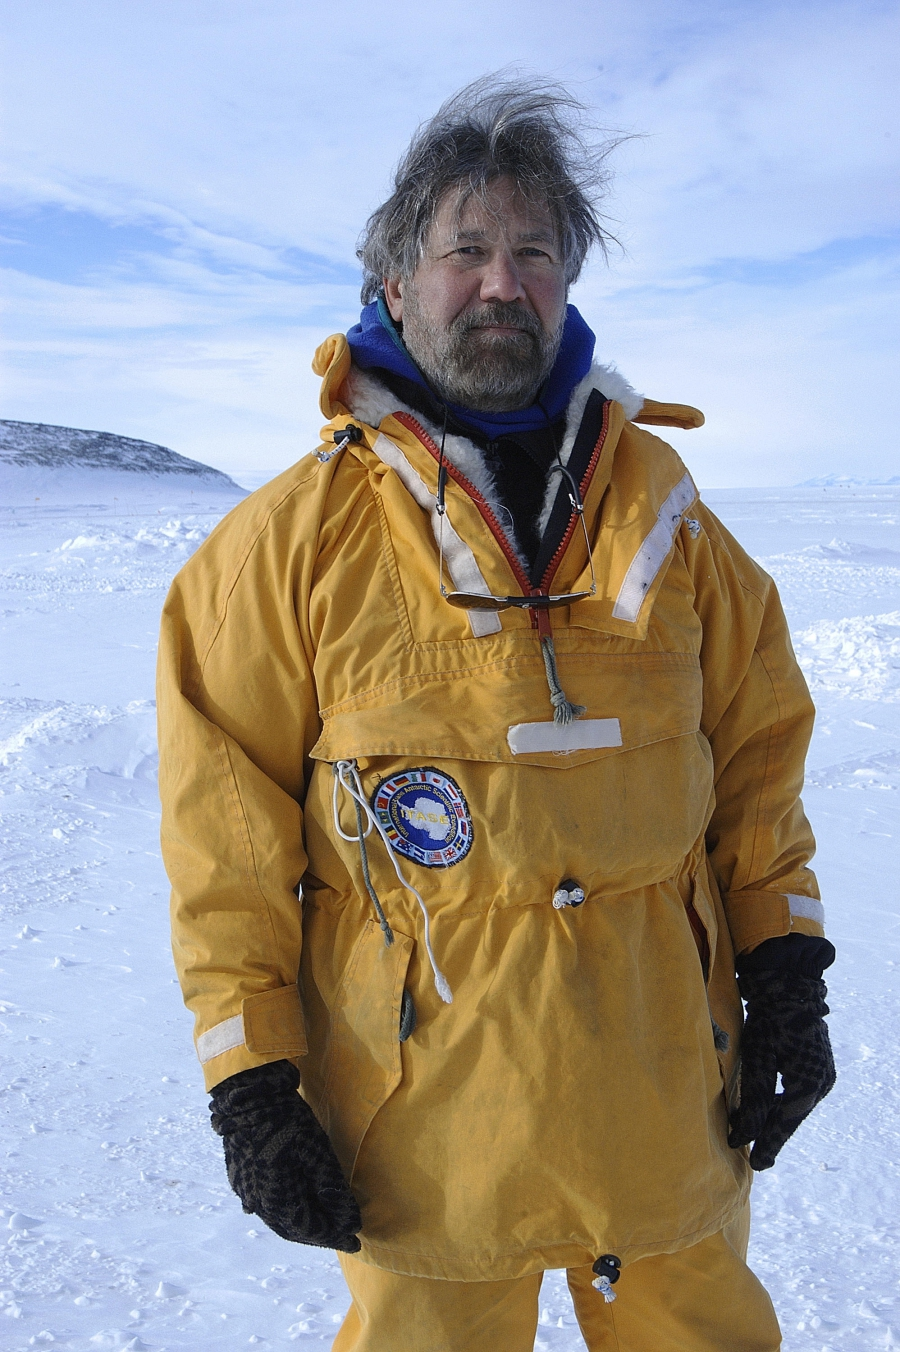 Paul Mayewski of the University of Maine has led more than 50 research expeditions in extreme environments.